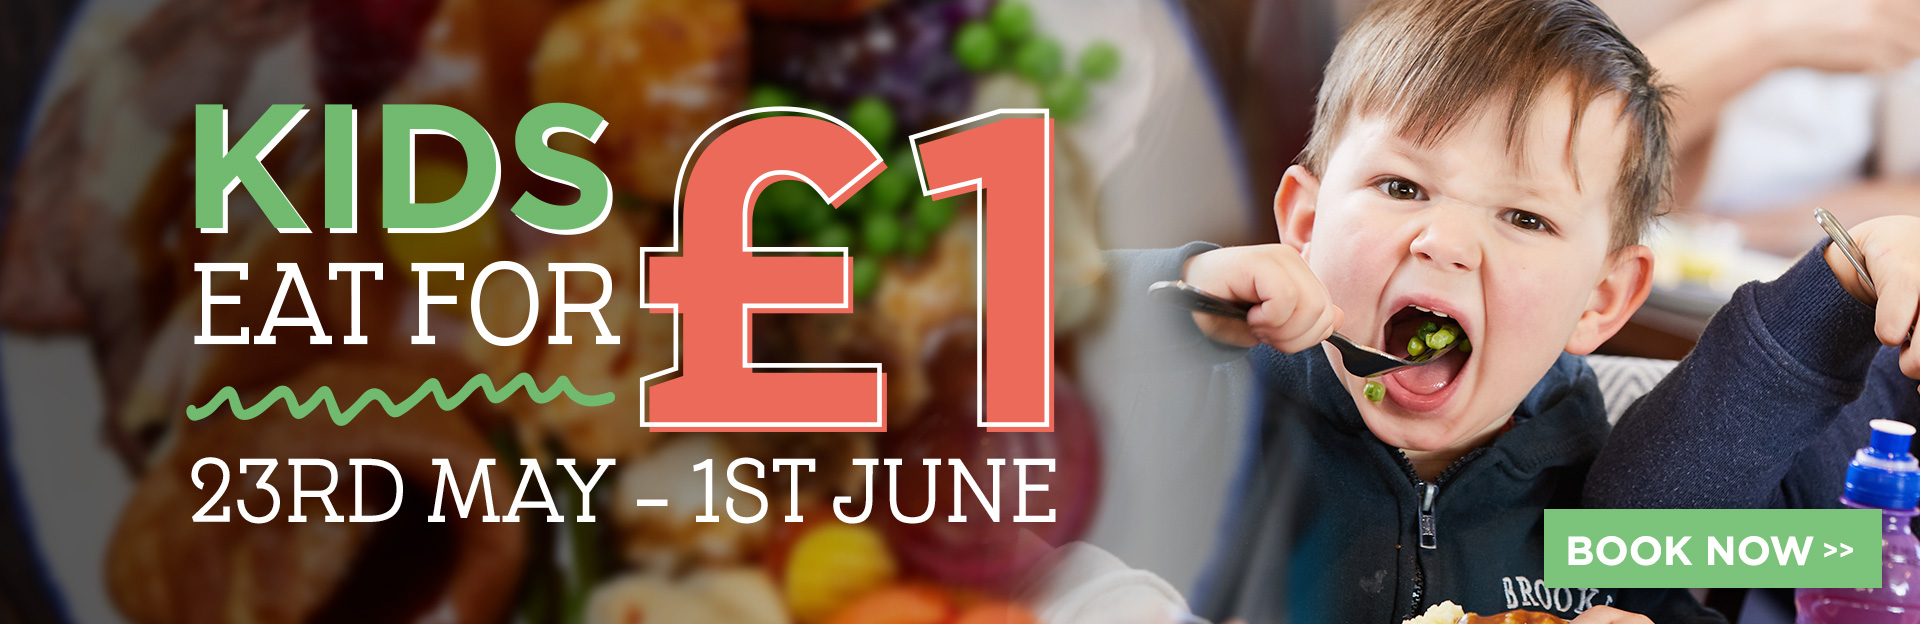 Kids eat for £1 at The Old Moat House